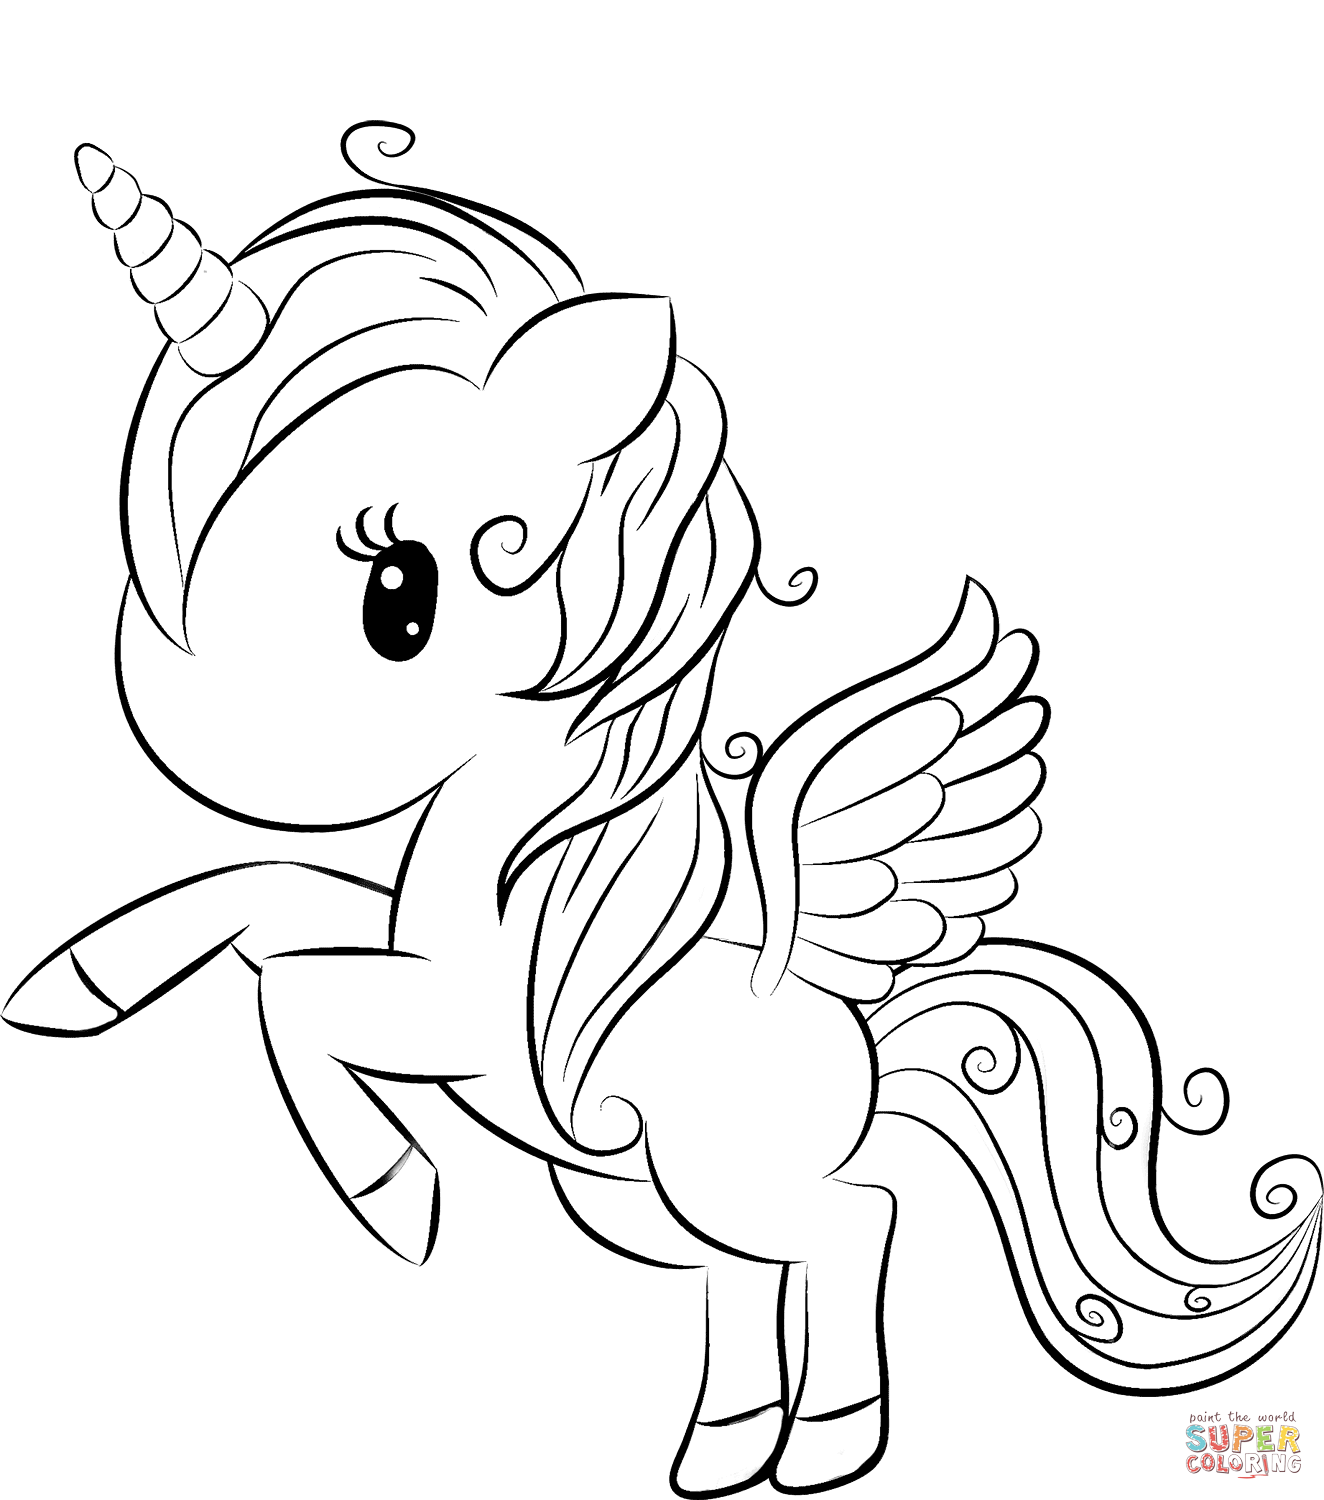 coloring pages of unicorns free printable unicorn coloring pages winged 101 worksheets of pages unicorns coloring